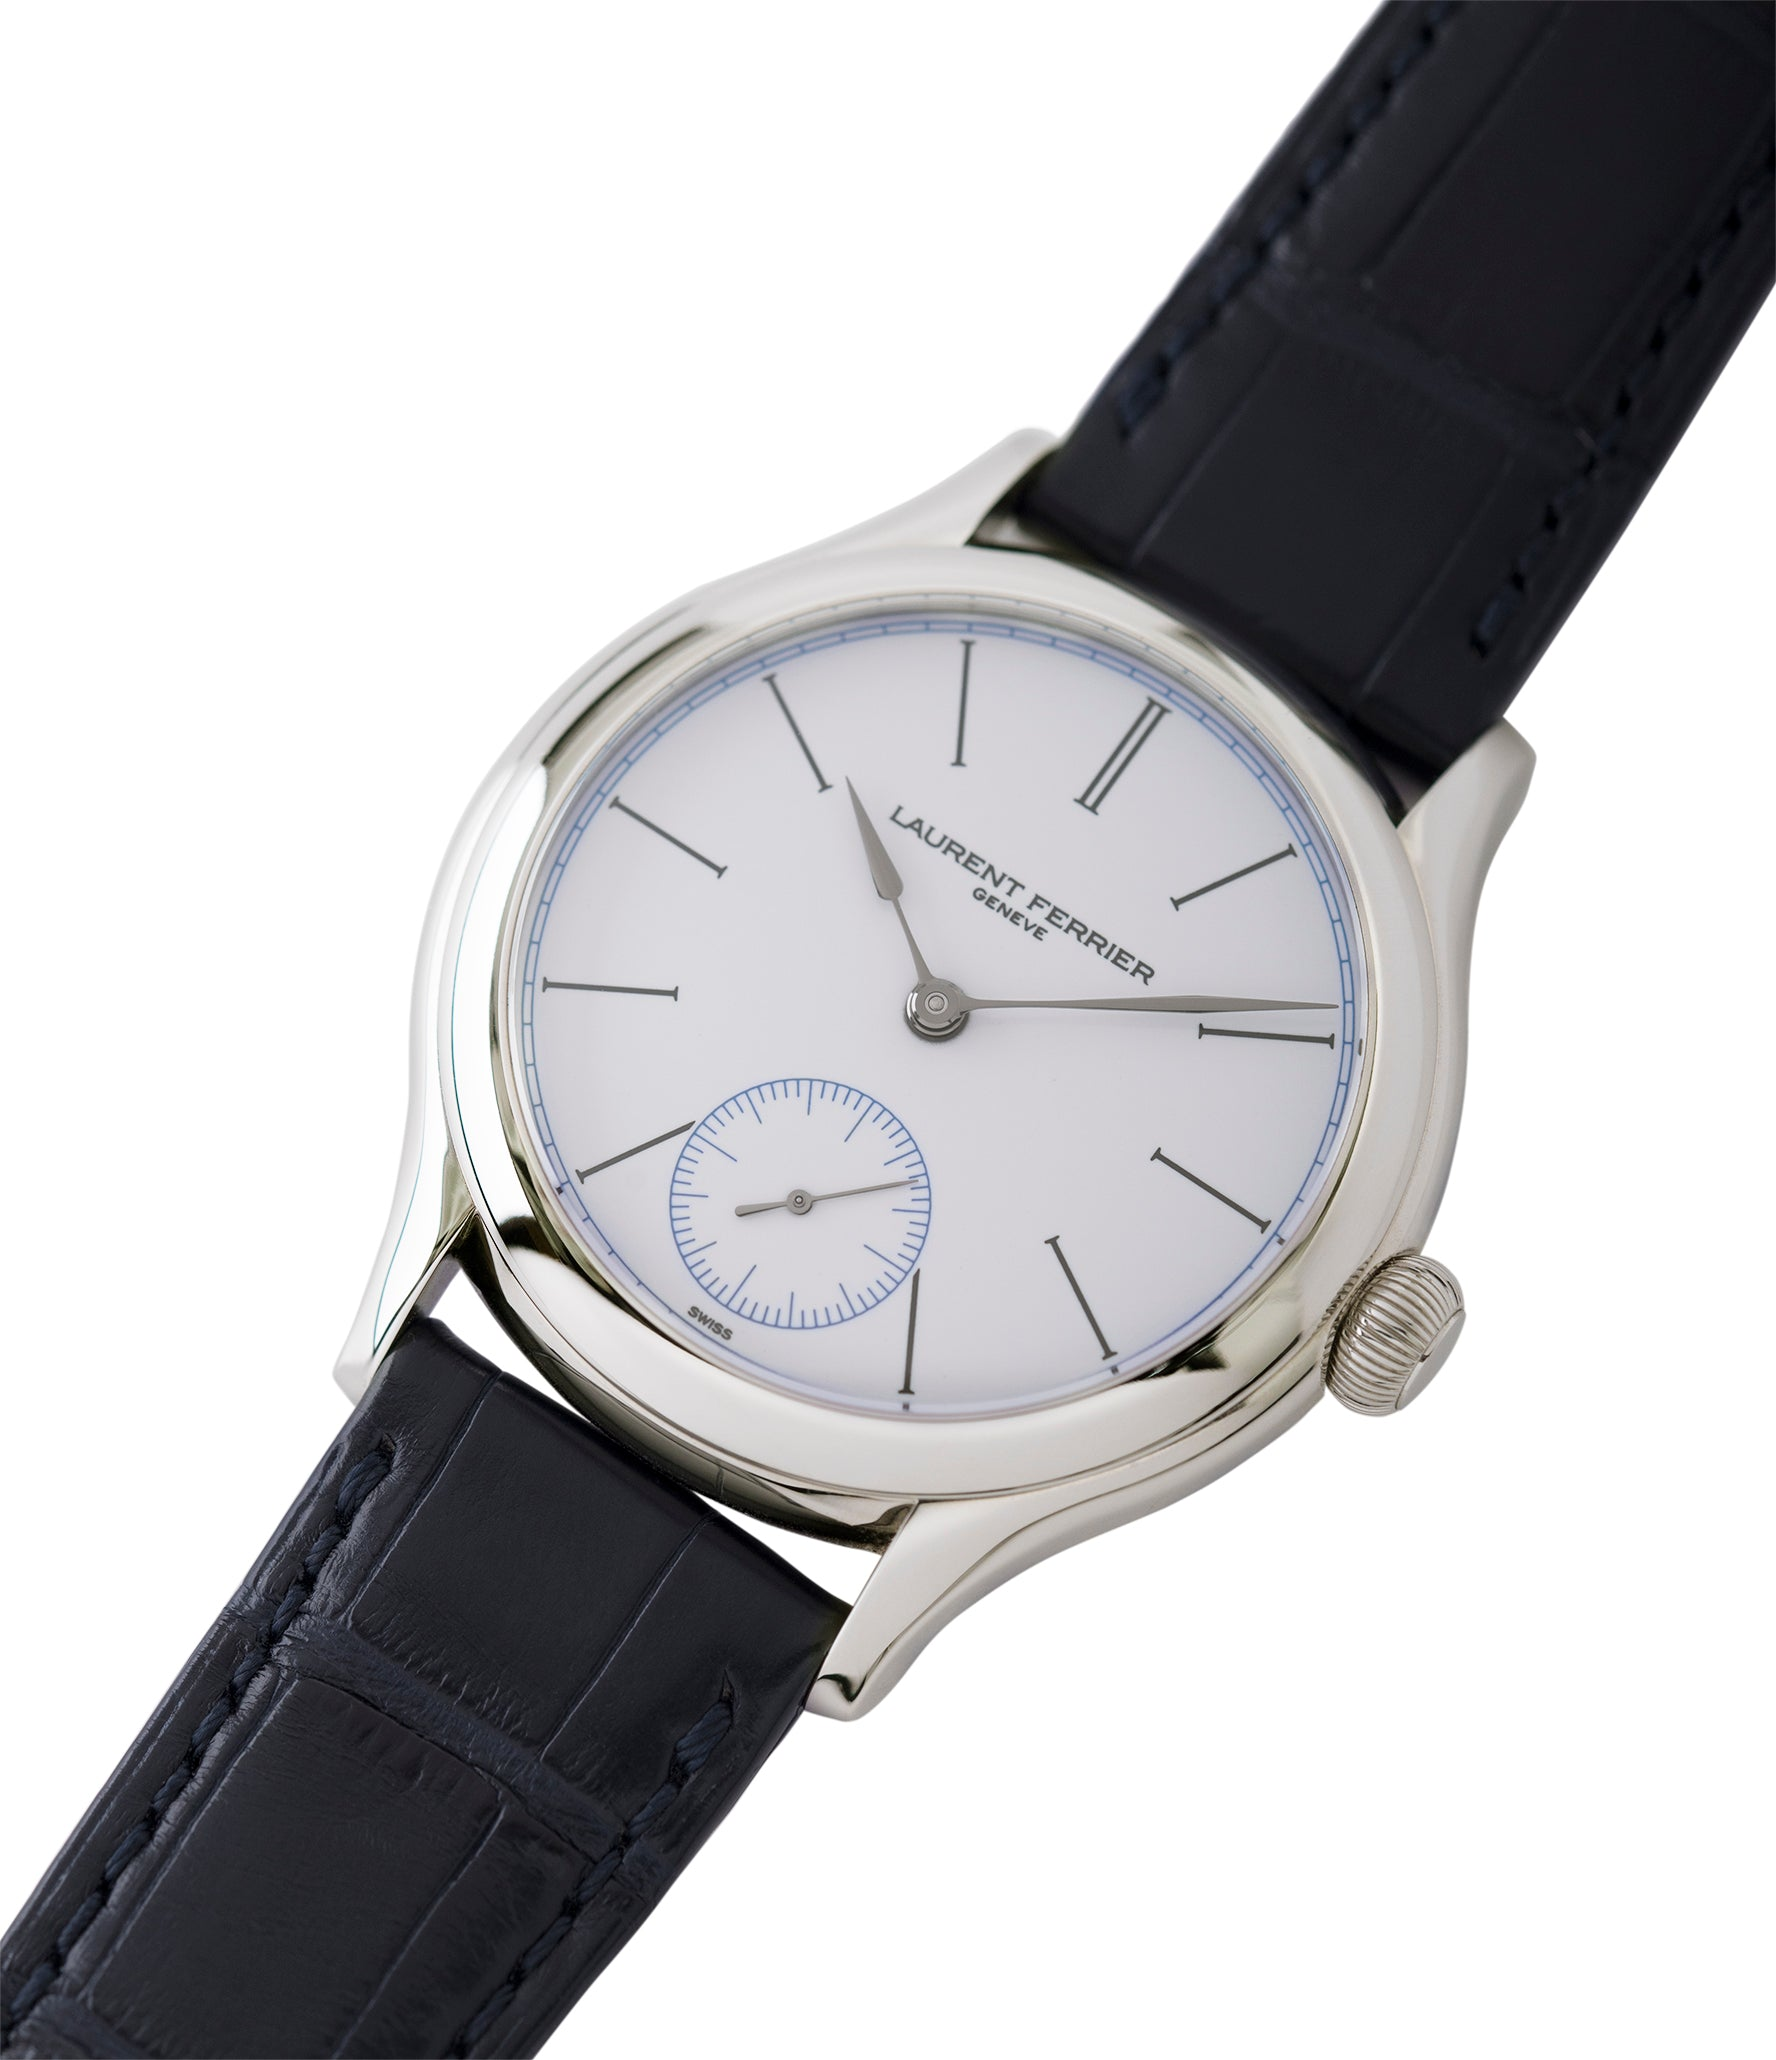 buy preowned Laurent Ferrier Galet Micro-Rotor FBN 230.02 Enamel dial steel watch for sale online at A Collected Man London UK approved seller of independent watchmaker Laurent Ferrier